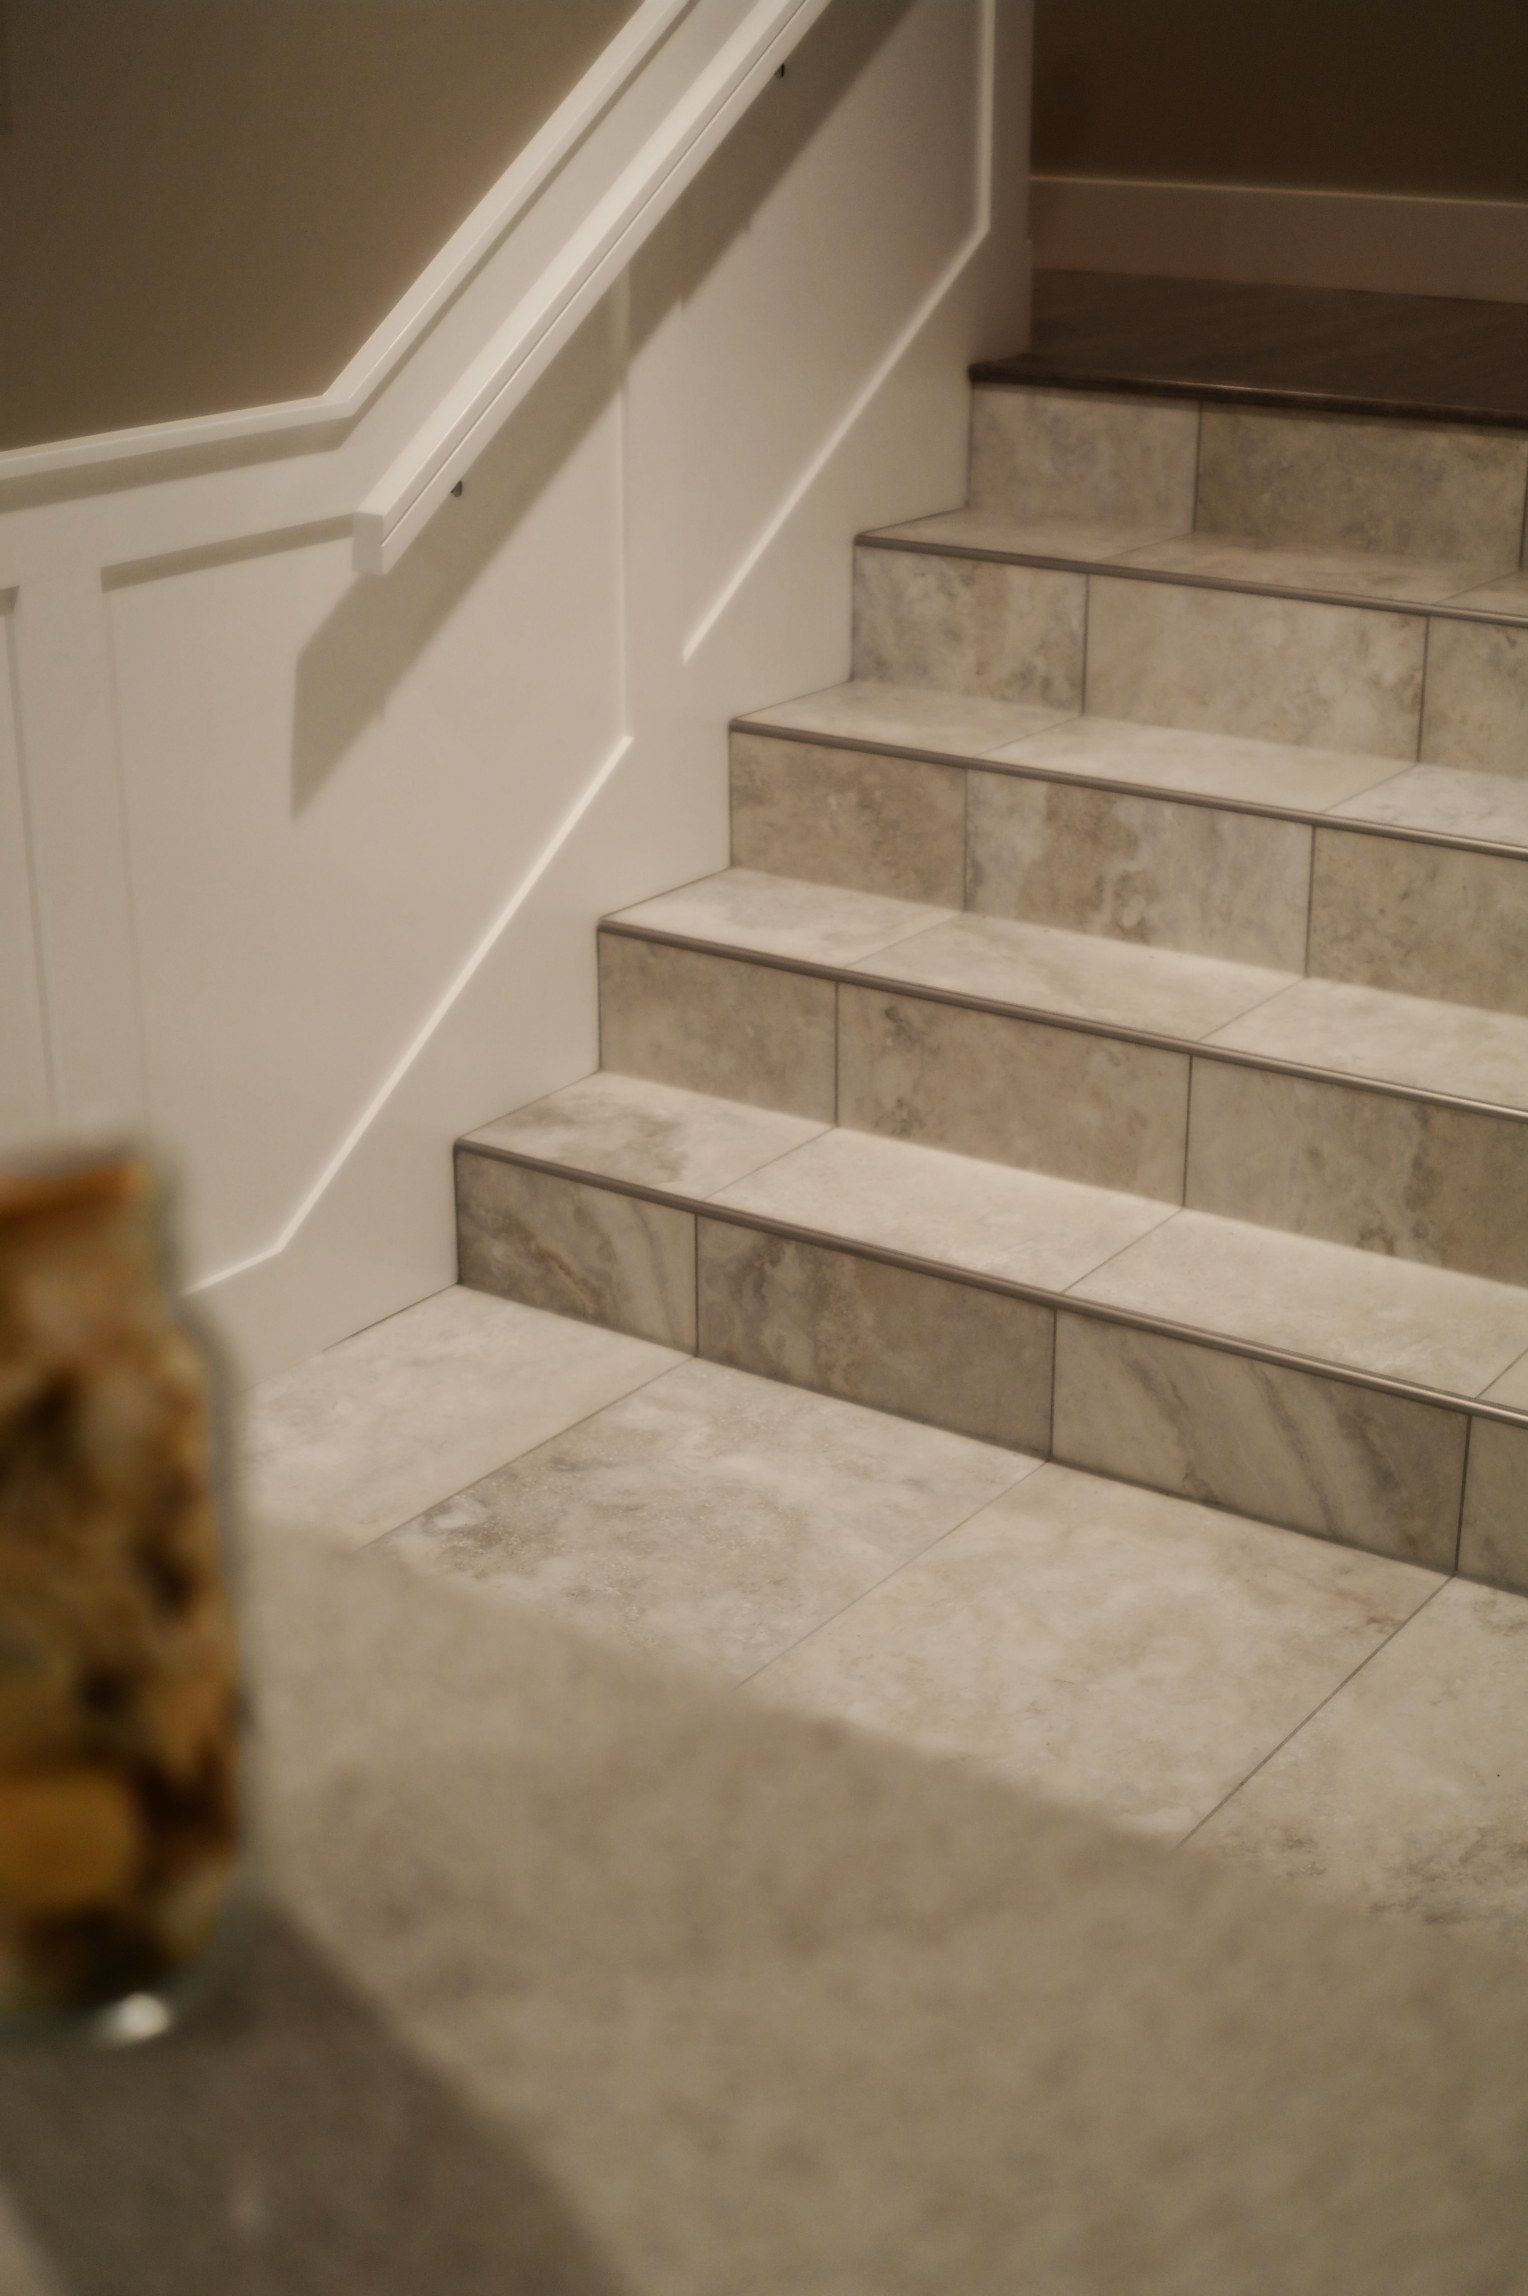 tile on stairs can be a beautiful